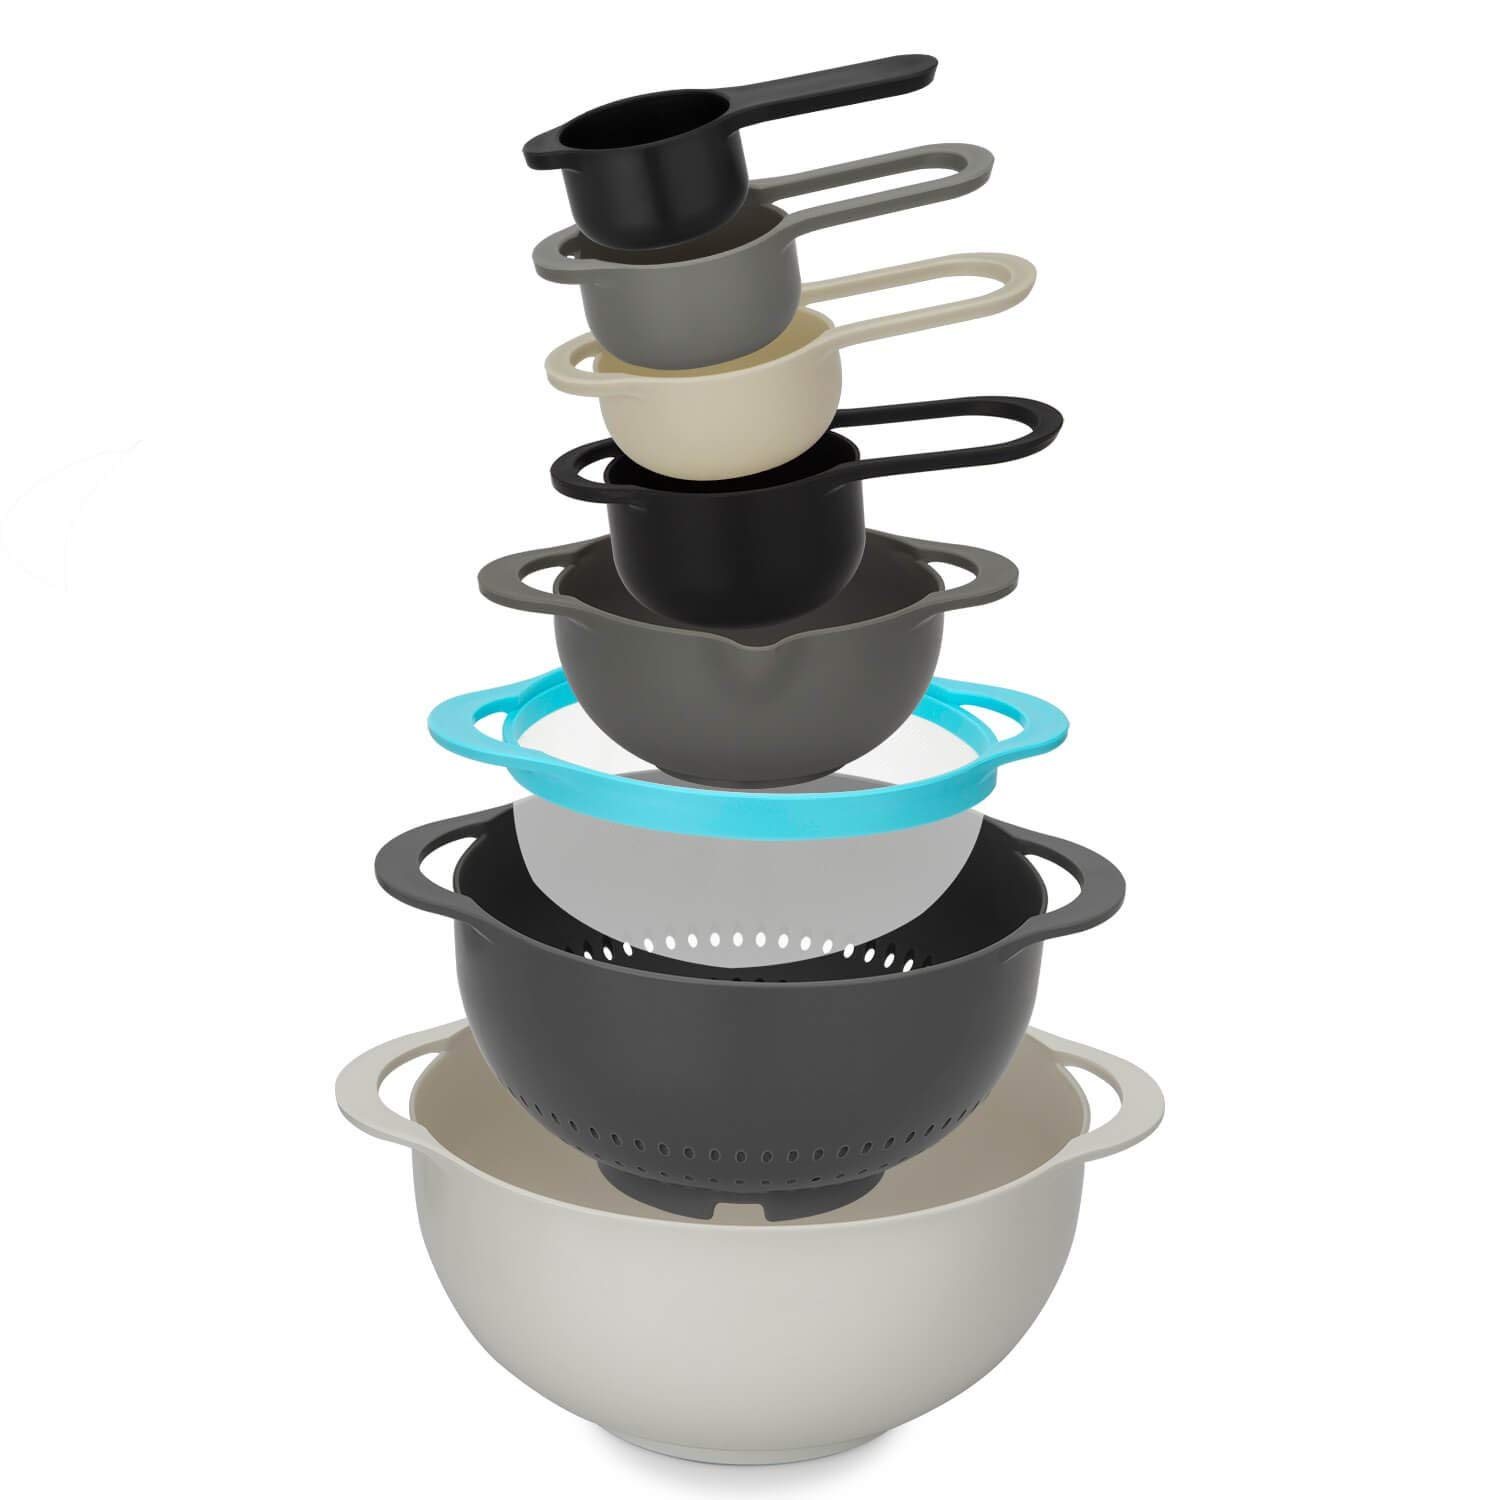 Homwe 8 Piece Plastic Mixing Bowl Set, Colander Strainer and Measuring Spoon Bundle Stackable, Nesting Mixers and Measure Kitchen Accessories | Baking & Cooking Use